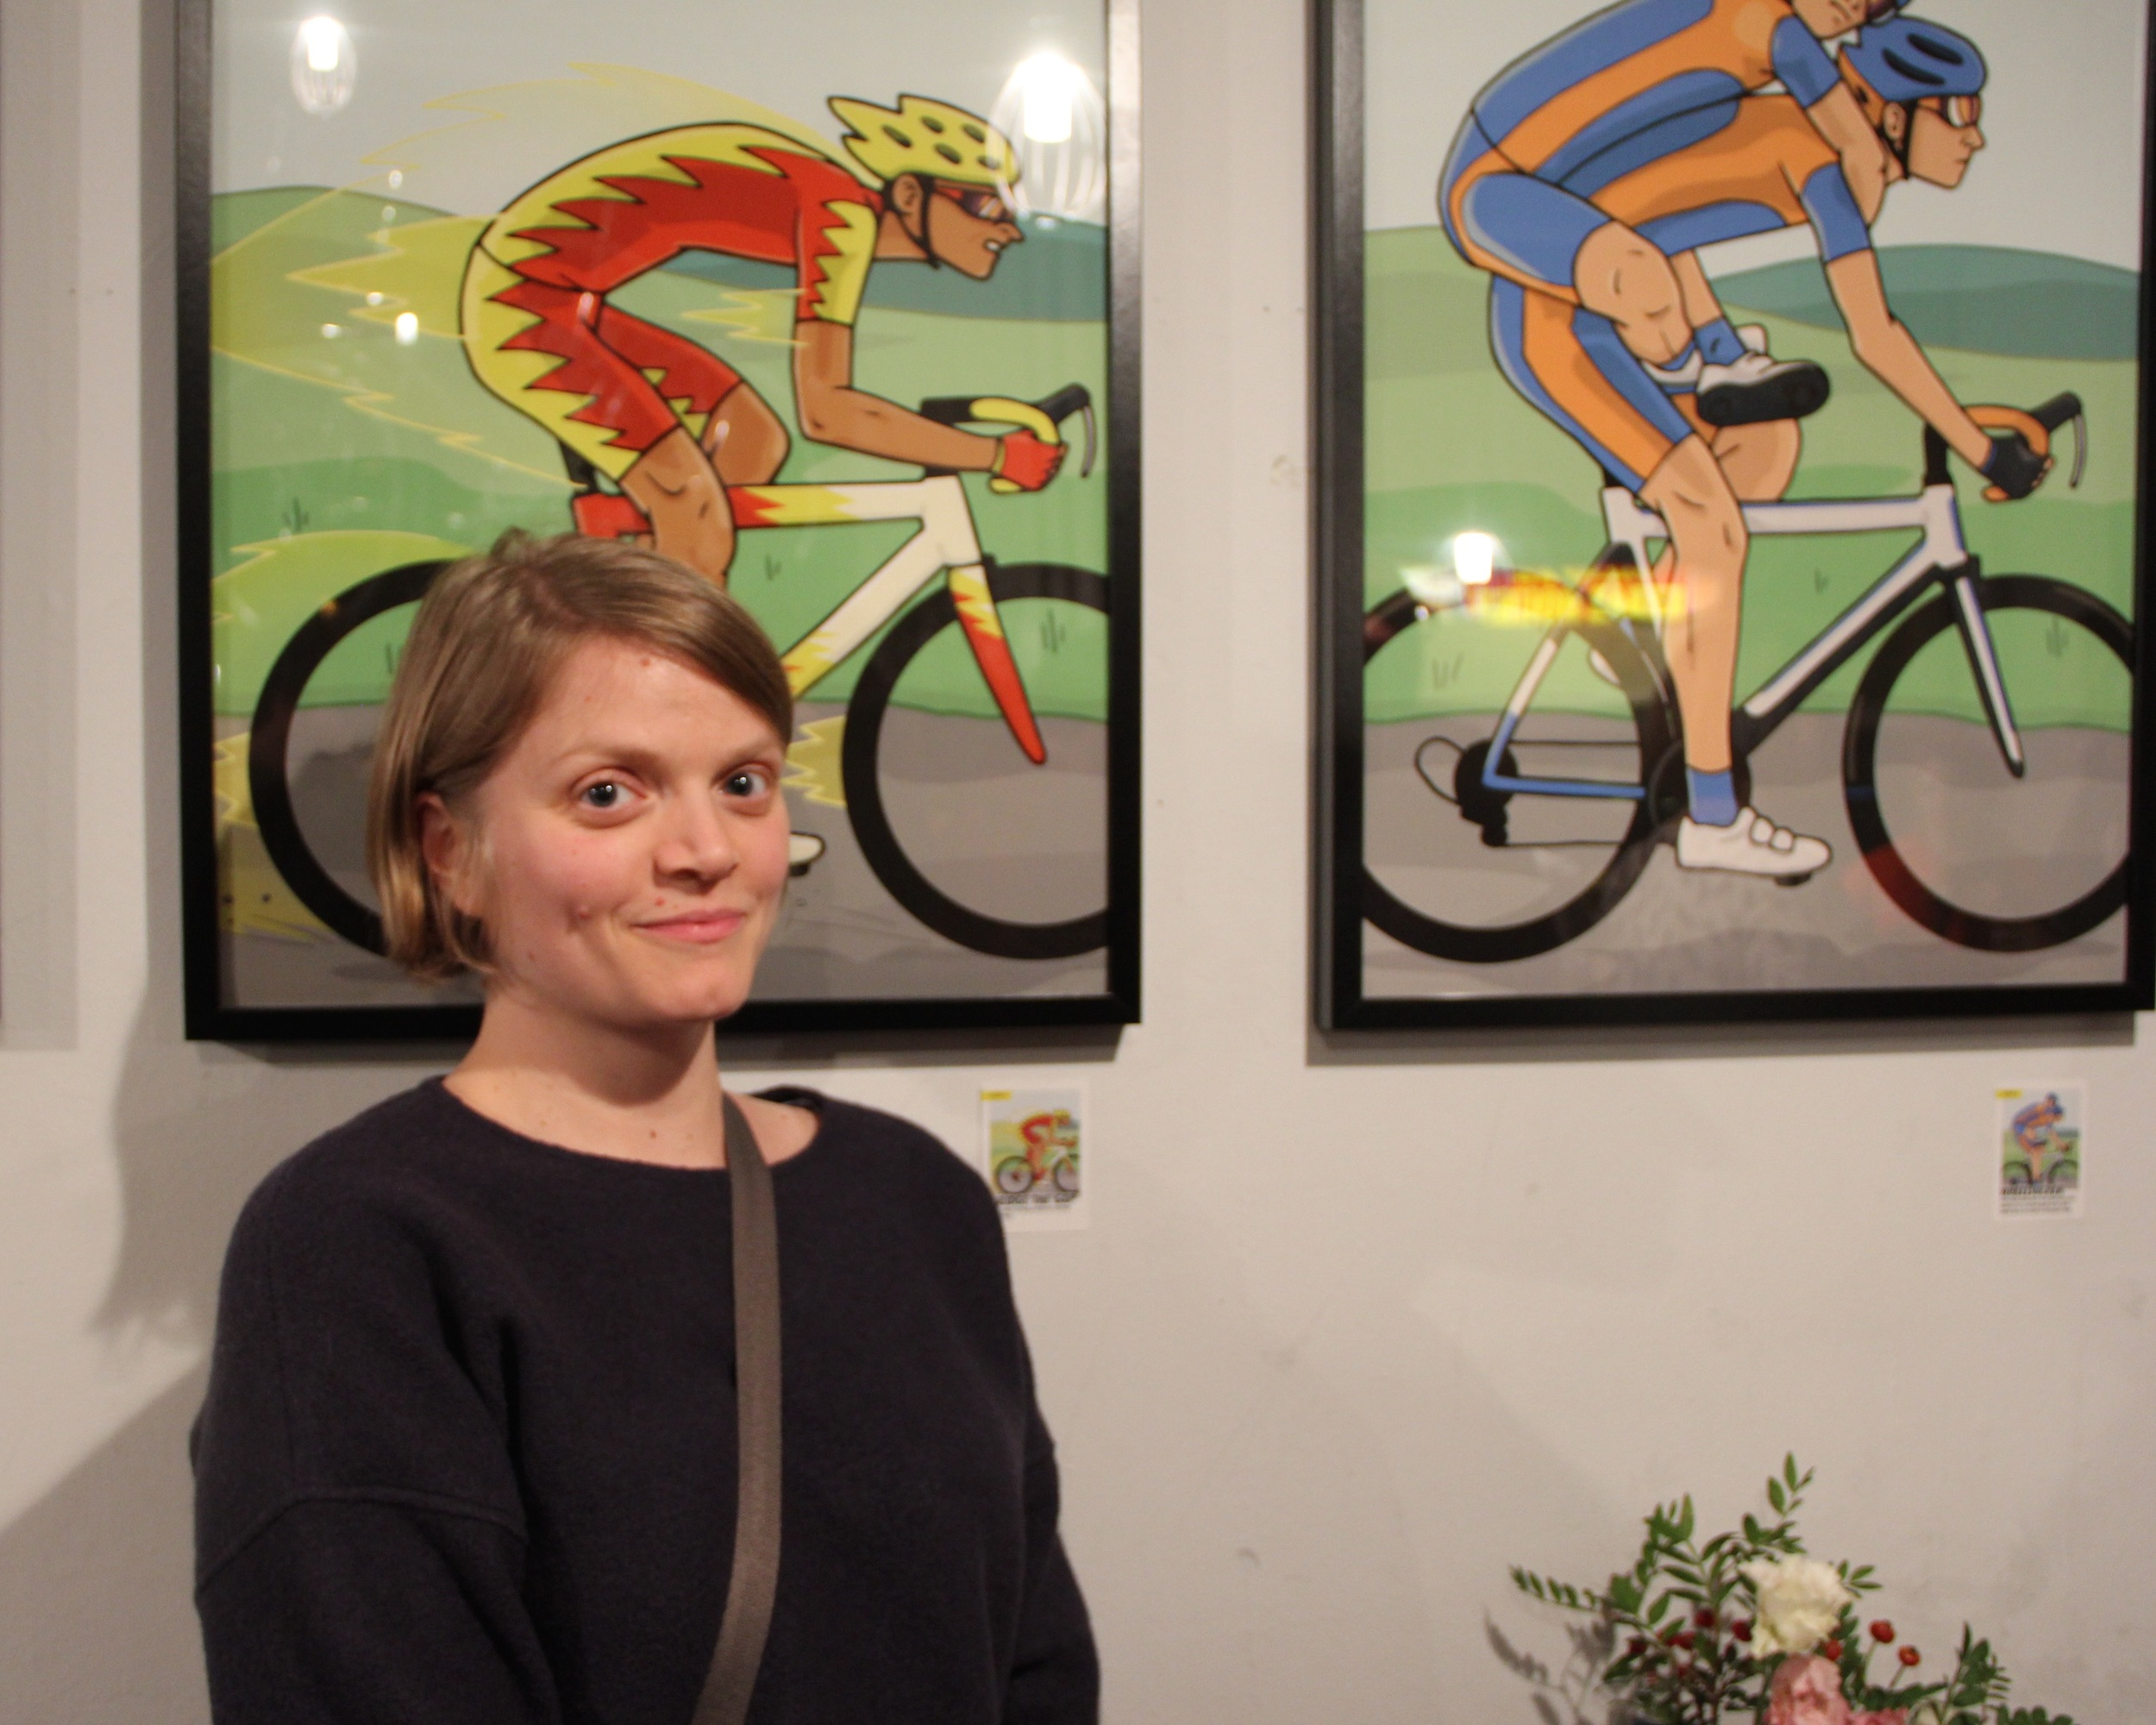 Canadian illustrator Adrienne Hawkes - the final link in the creative chain